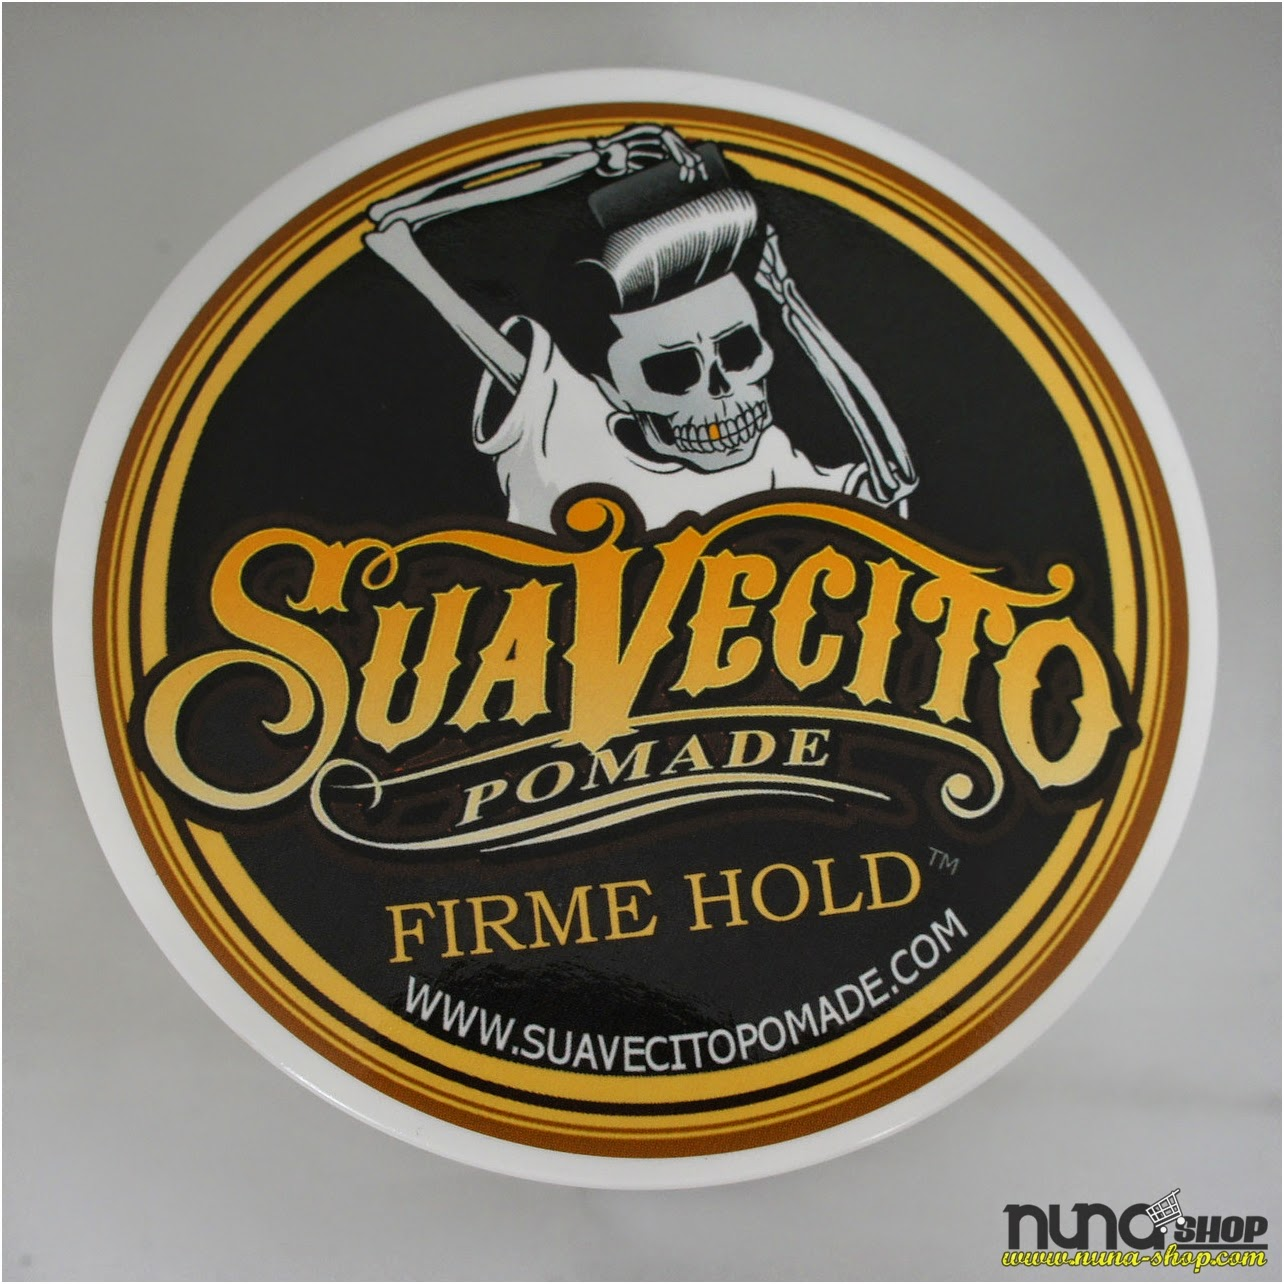 Pomade (minyak rambut) Suavecito firme hold